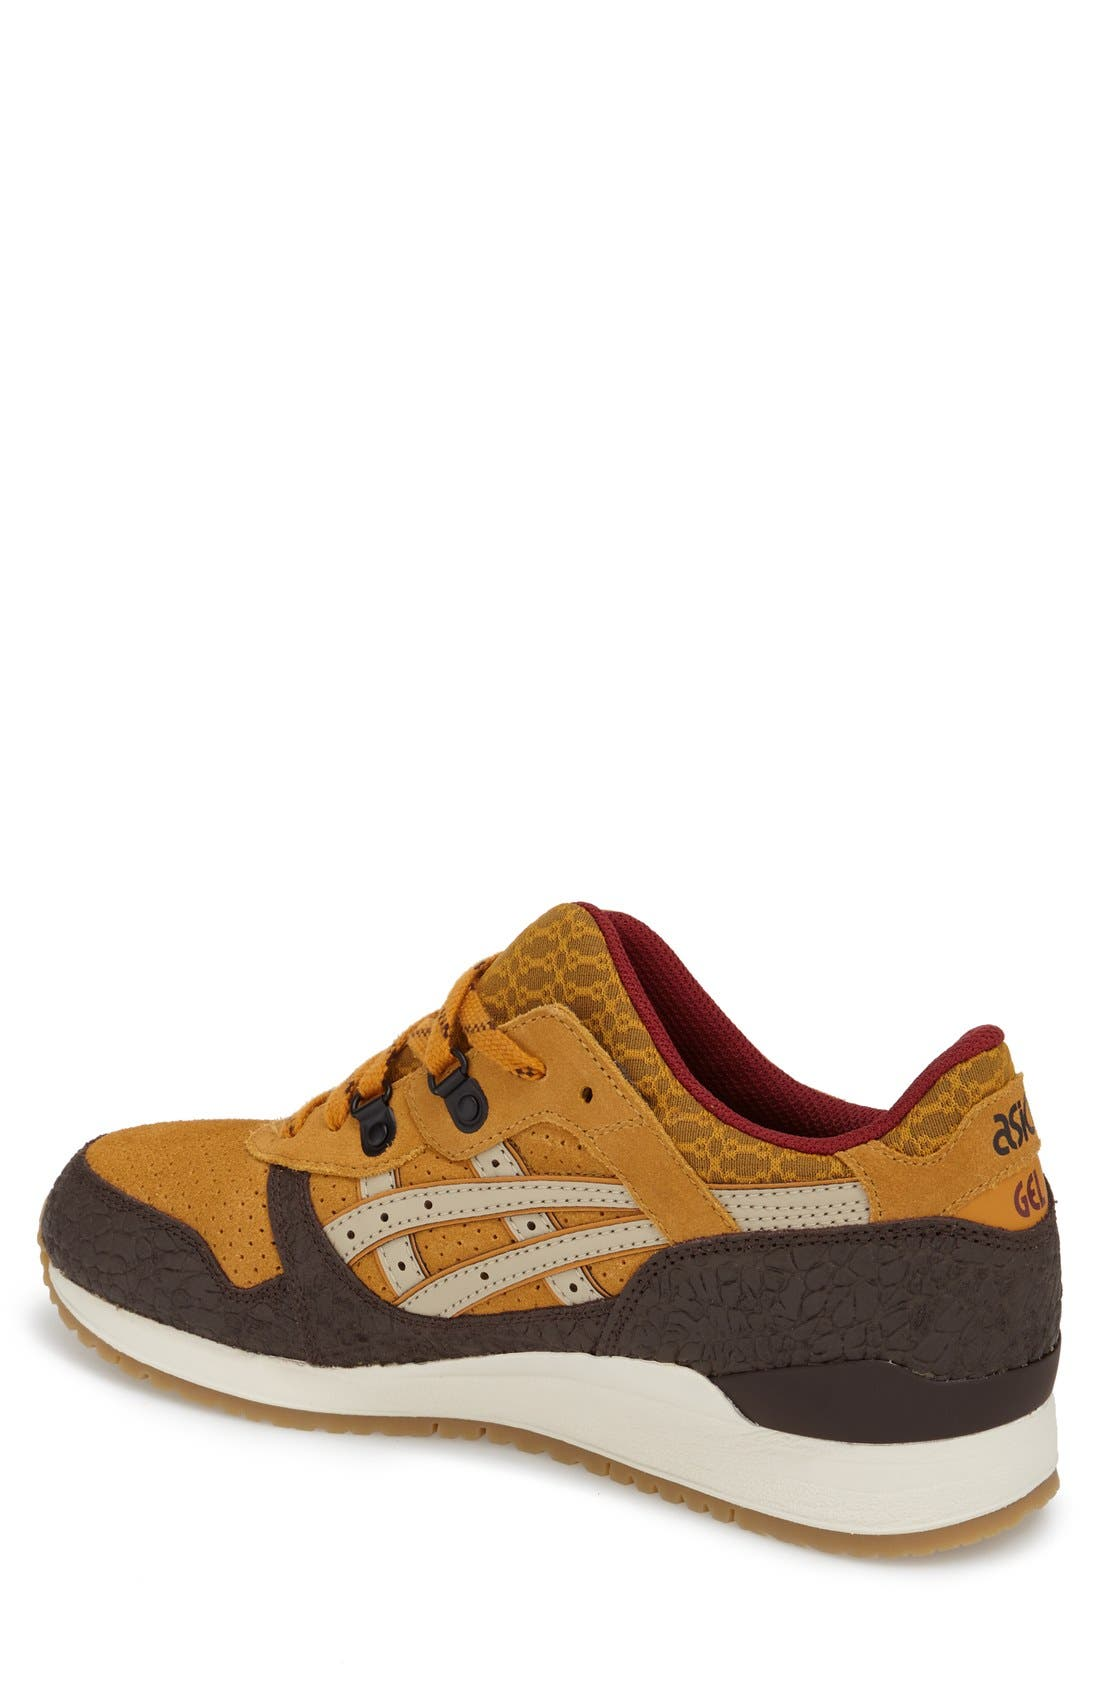 Alternate Image 2  - ASICS® 'GEL-Lyte III' Sneaker (Men)